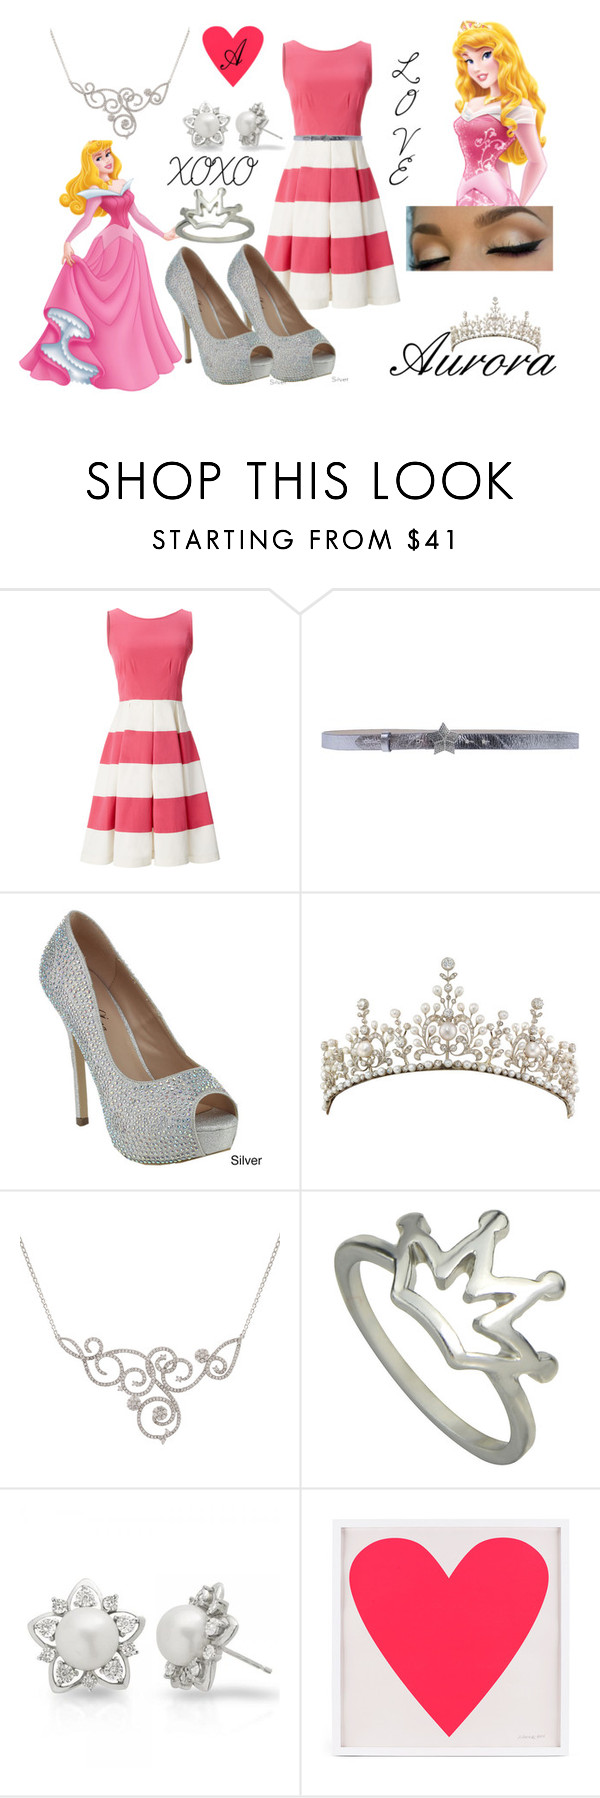 """Aurora For Valentine's Day!"" by wonderlandcreations ❤ liked on Polyvore featuring Kate Spade, Just Cavalli, Disney, Allurez, women's clothing, women's fashion, women, female, woman and misses"